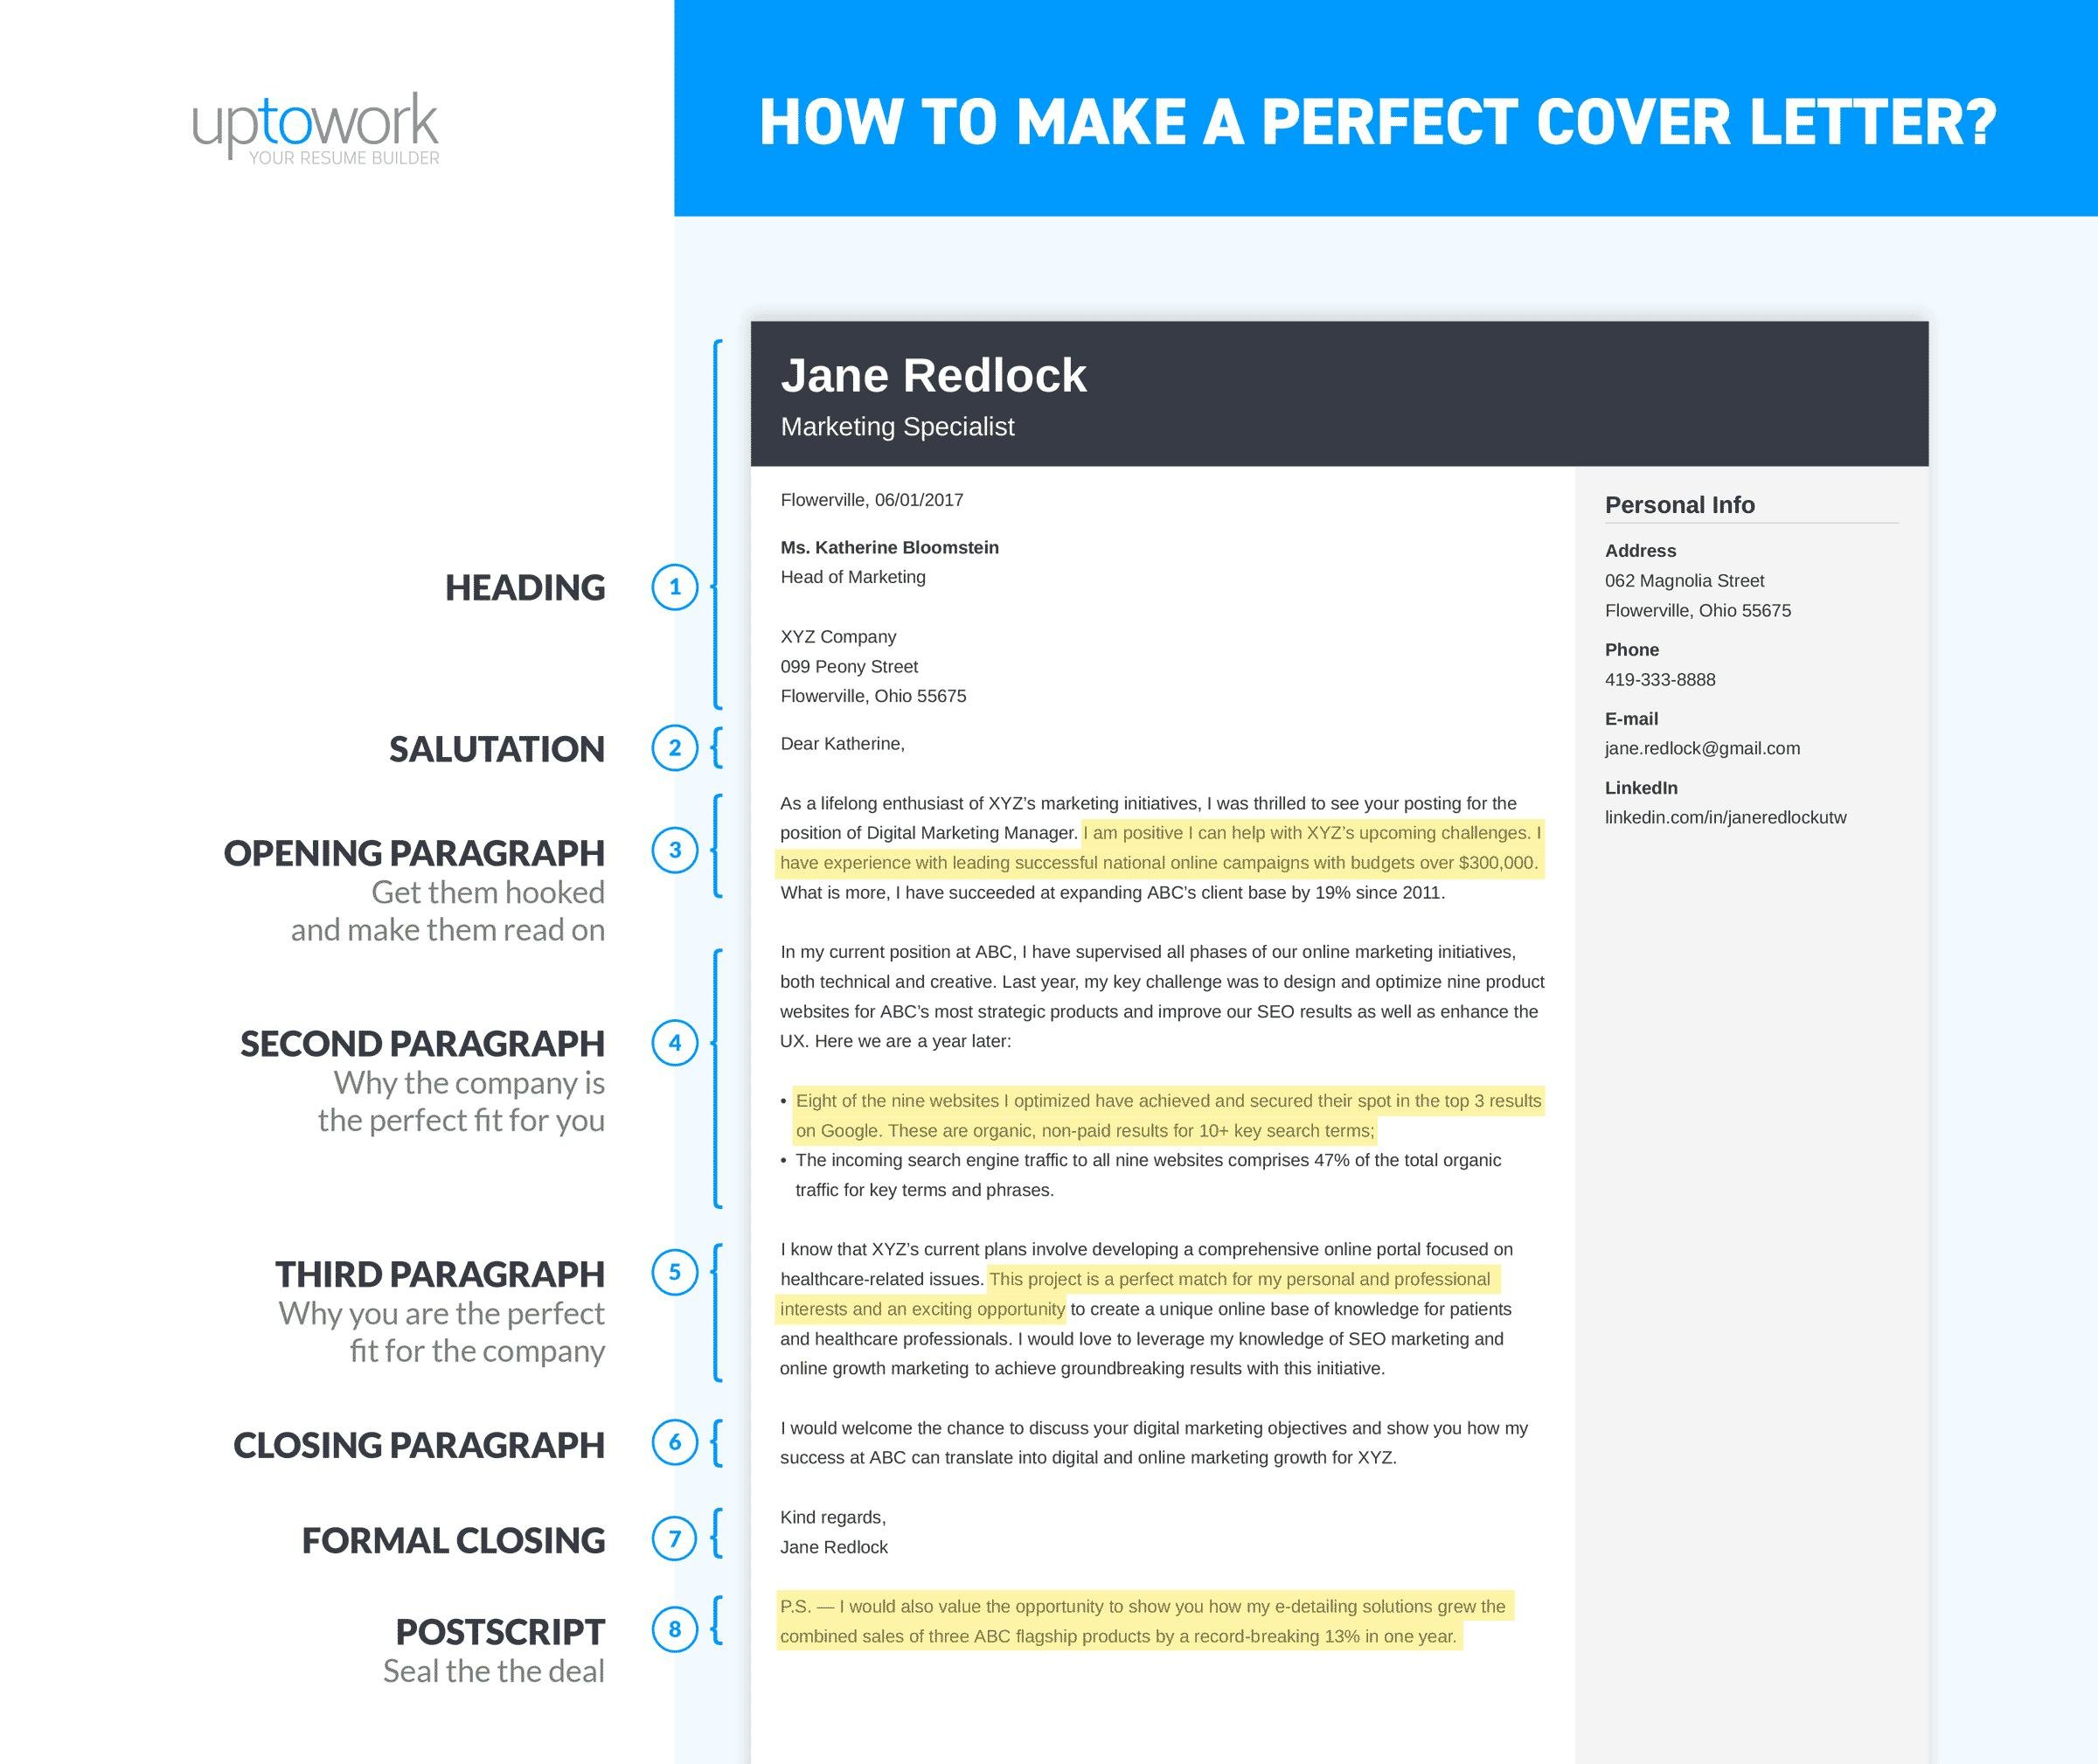 Writing Great Cover Letters: How To Write A Cover Letter In 8 Simple Steps (+12 Examples